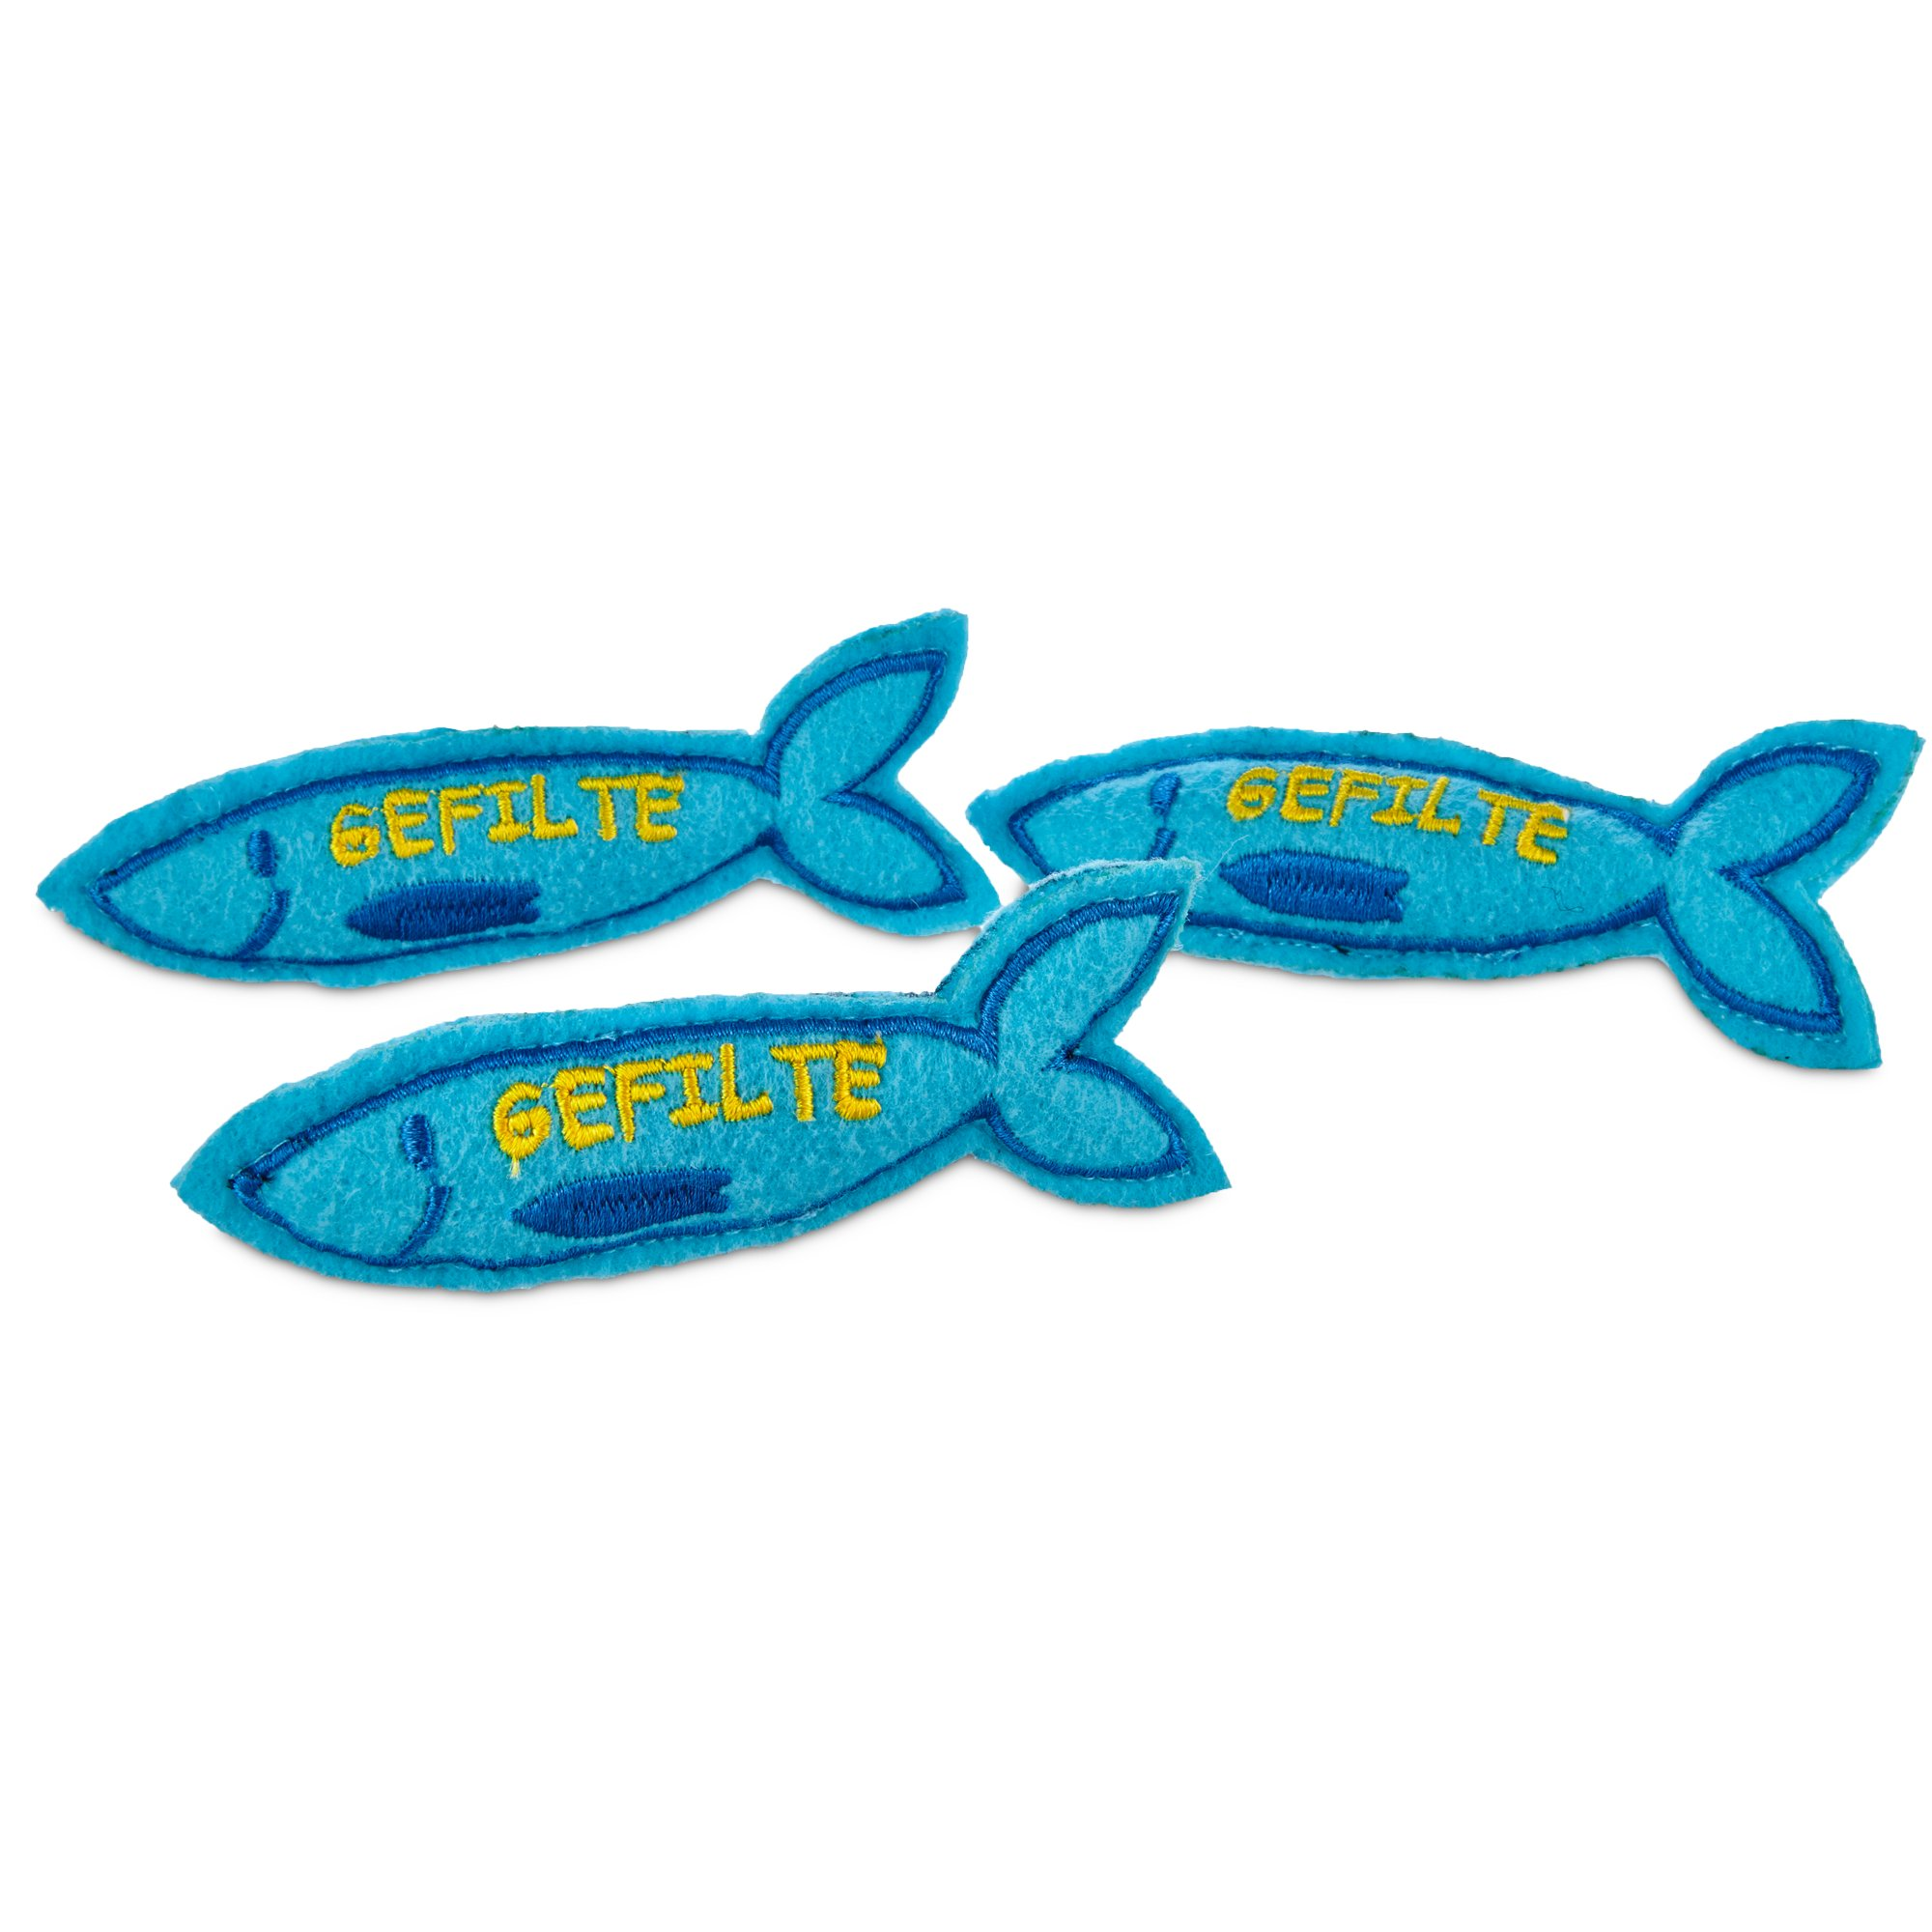 Time for joy hanukkah gefilte fish cat toy 3 pack petco for Fish cat toy